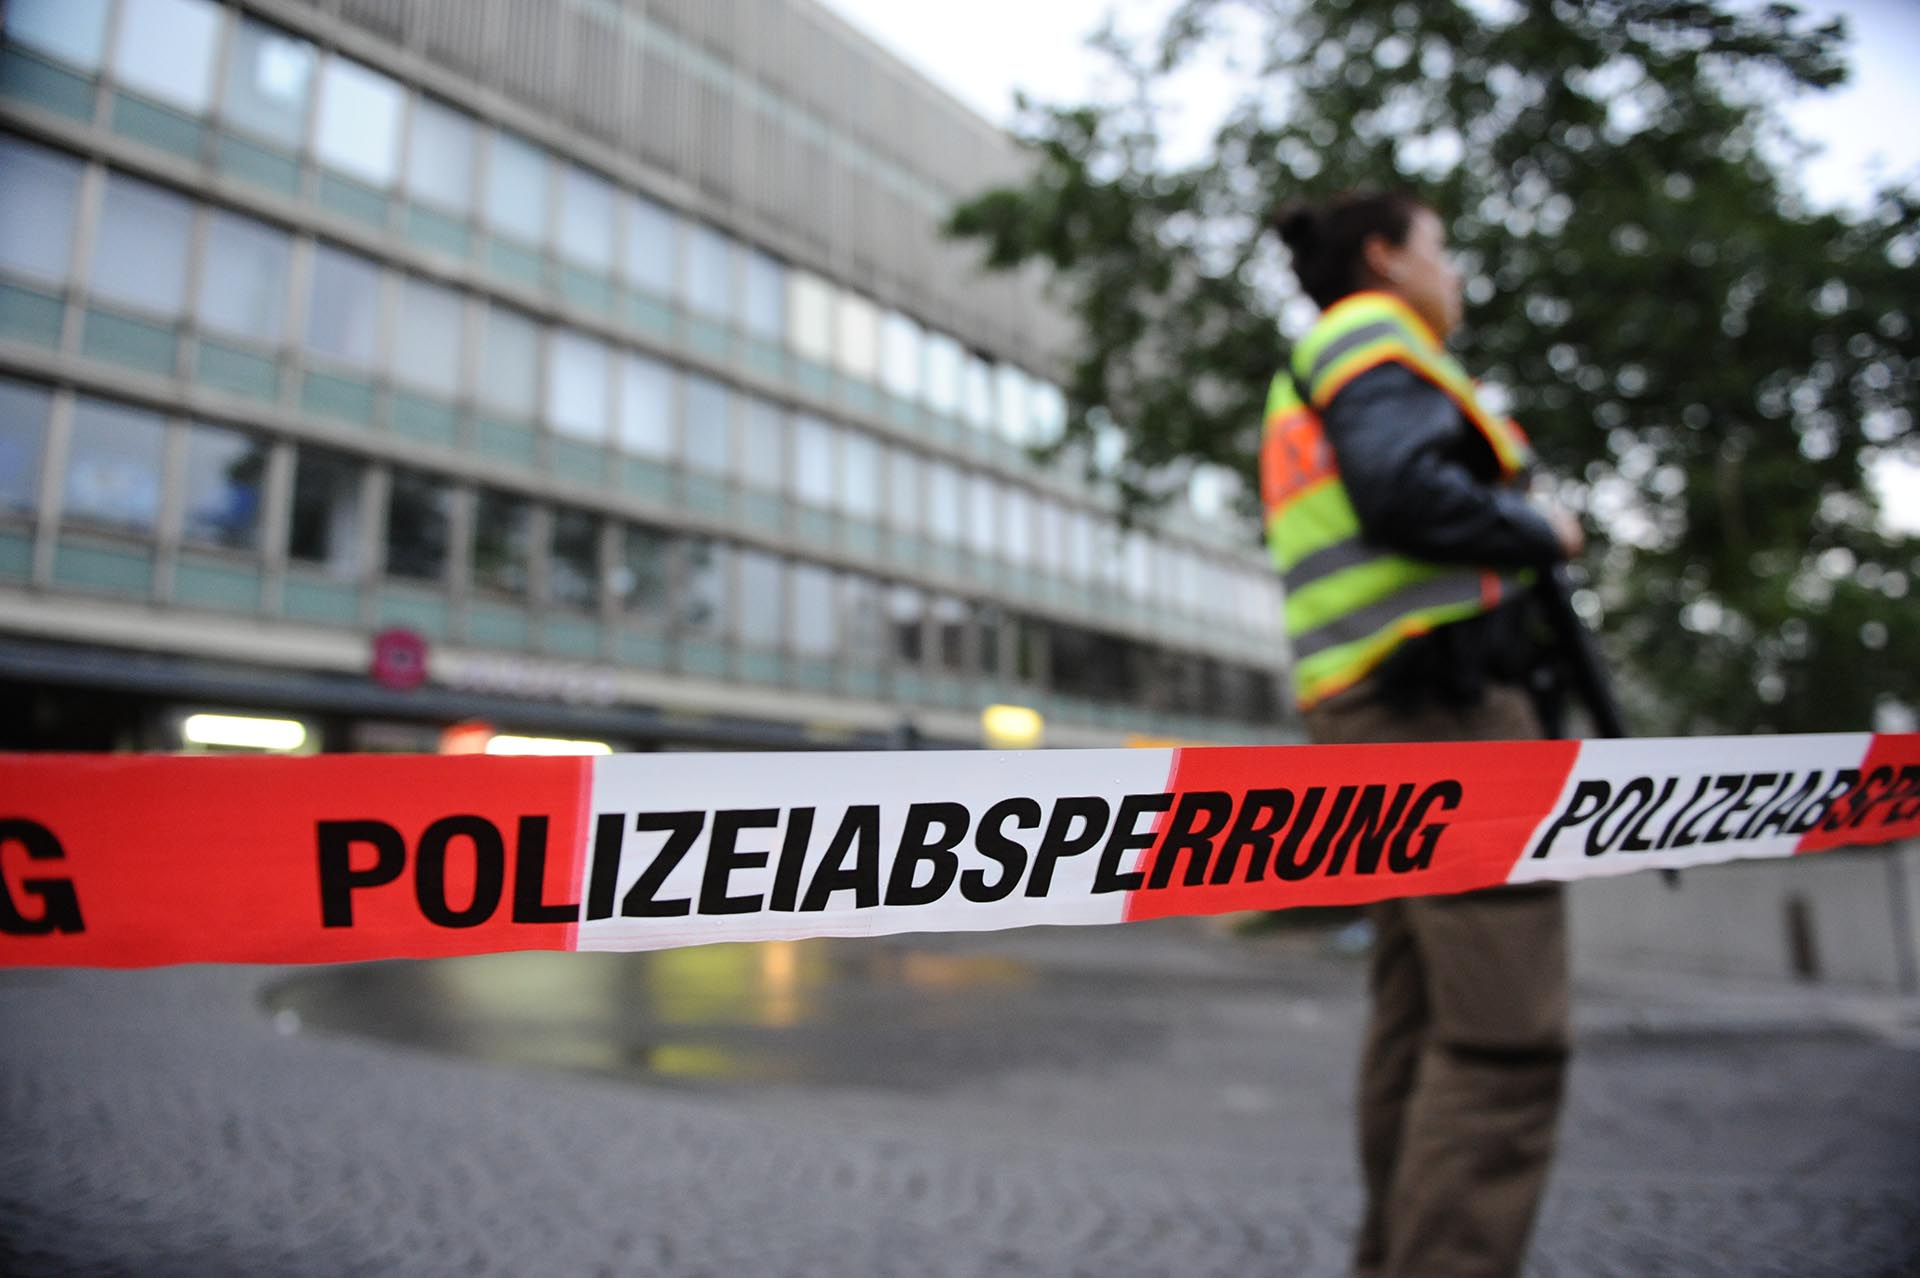 Police sign blocks the entrance to the main train station following shootings at a shopping mall earlier on July 22, 2016 in Munich. Six people were killed and several gravely injured on Friday in a shooting rampage at a Munich shopping centre, with the attackers still believed to be at large. / AFP PHOTO / dpa / Andreas Gebert / Germany OUT